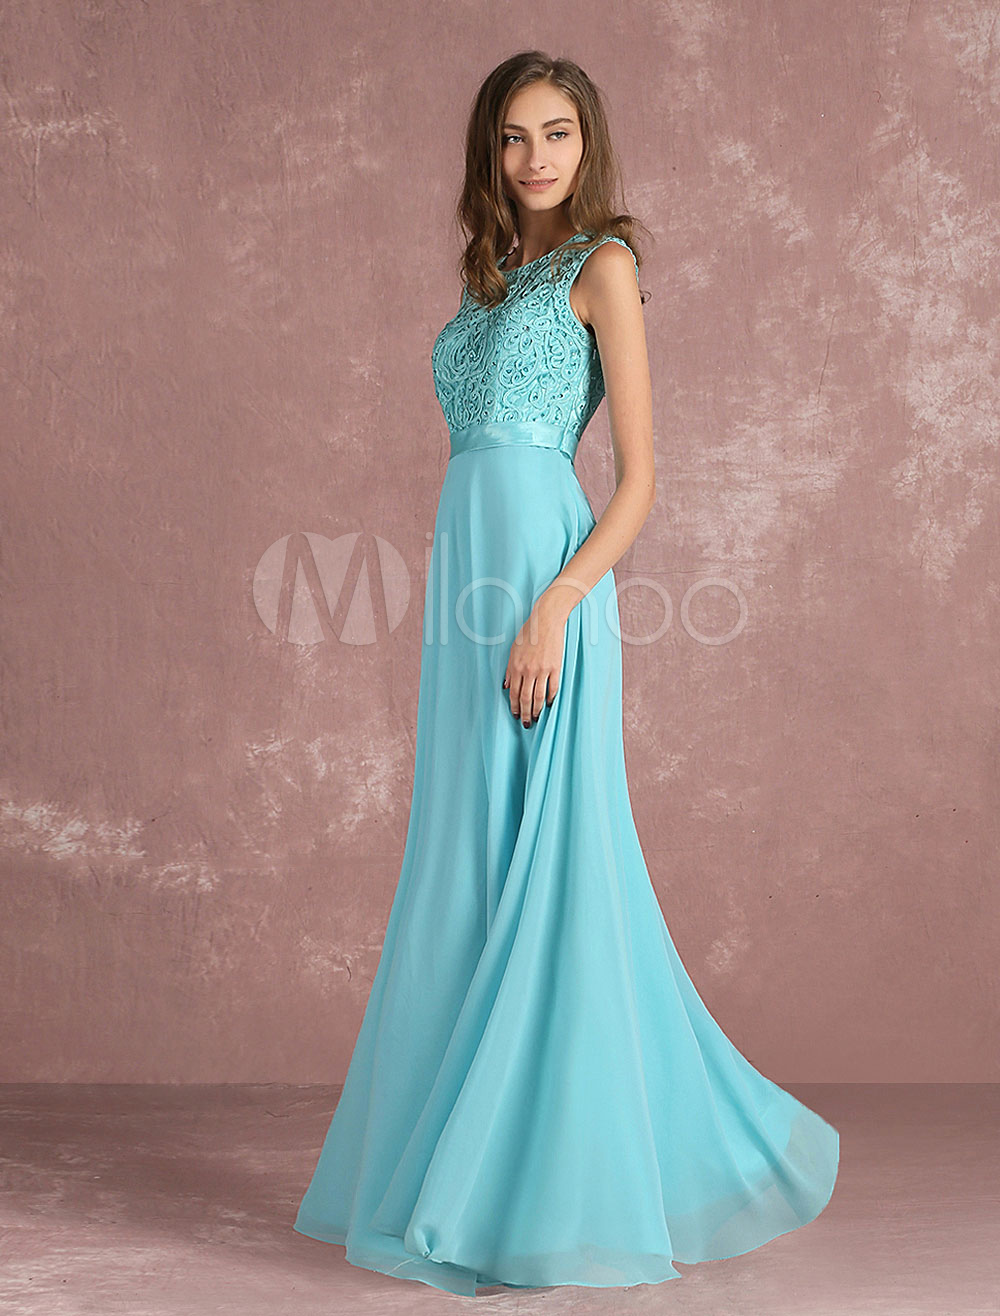 Turquoise Evening Dress Chiffon Beading Prom Dress Jewel Sleeveless Pleated A Line Floor Length Party Dress